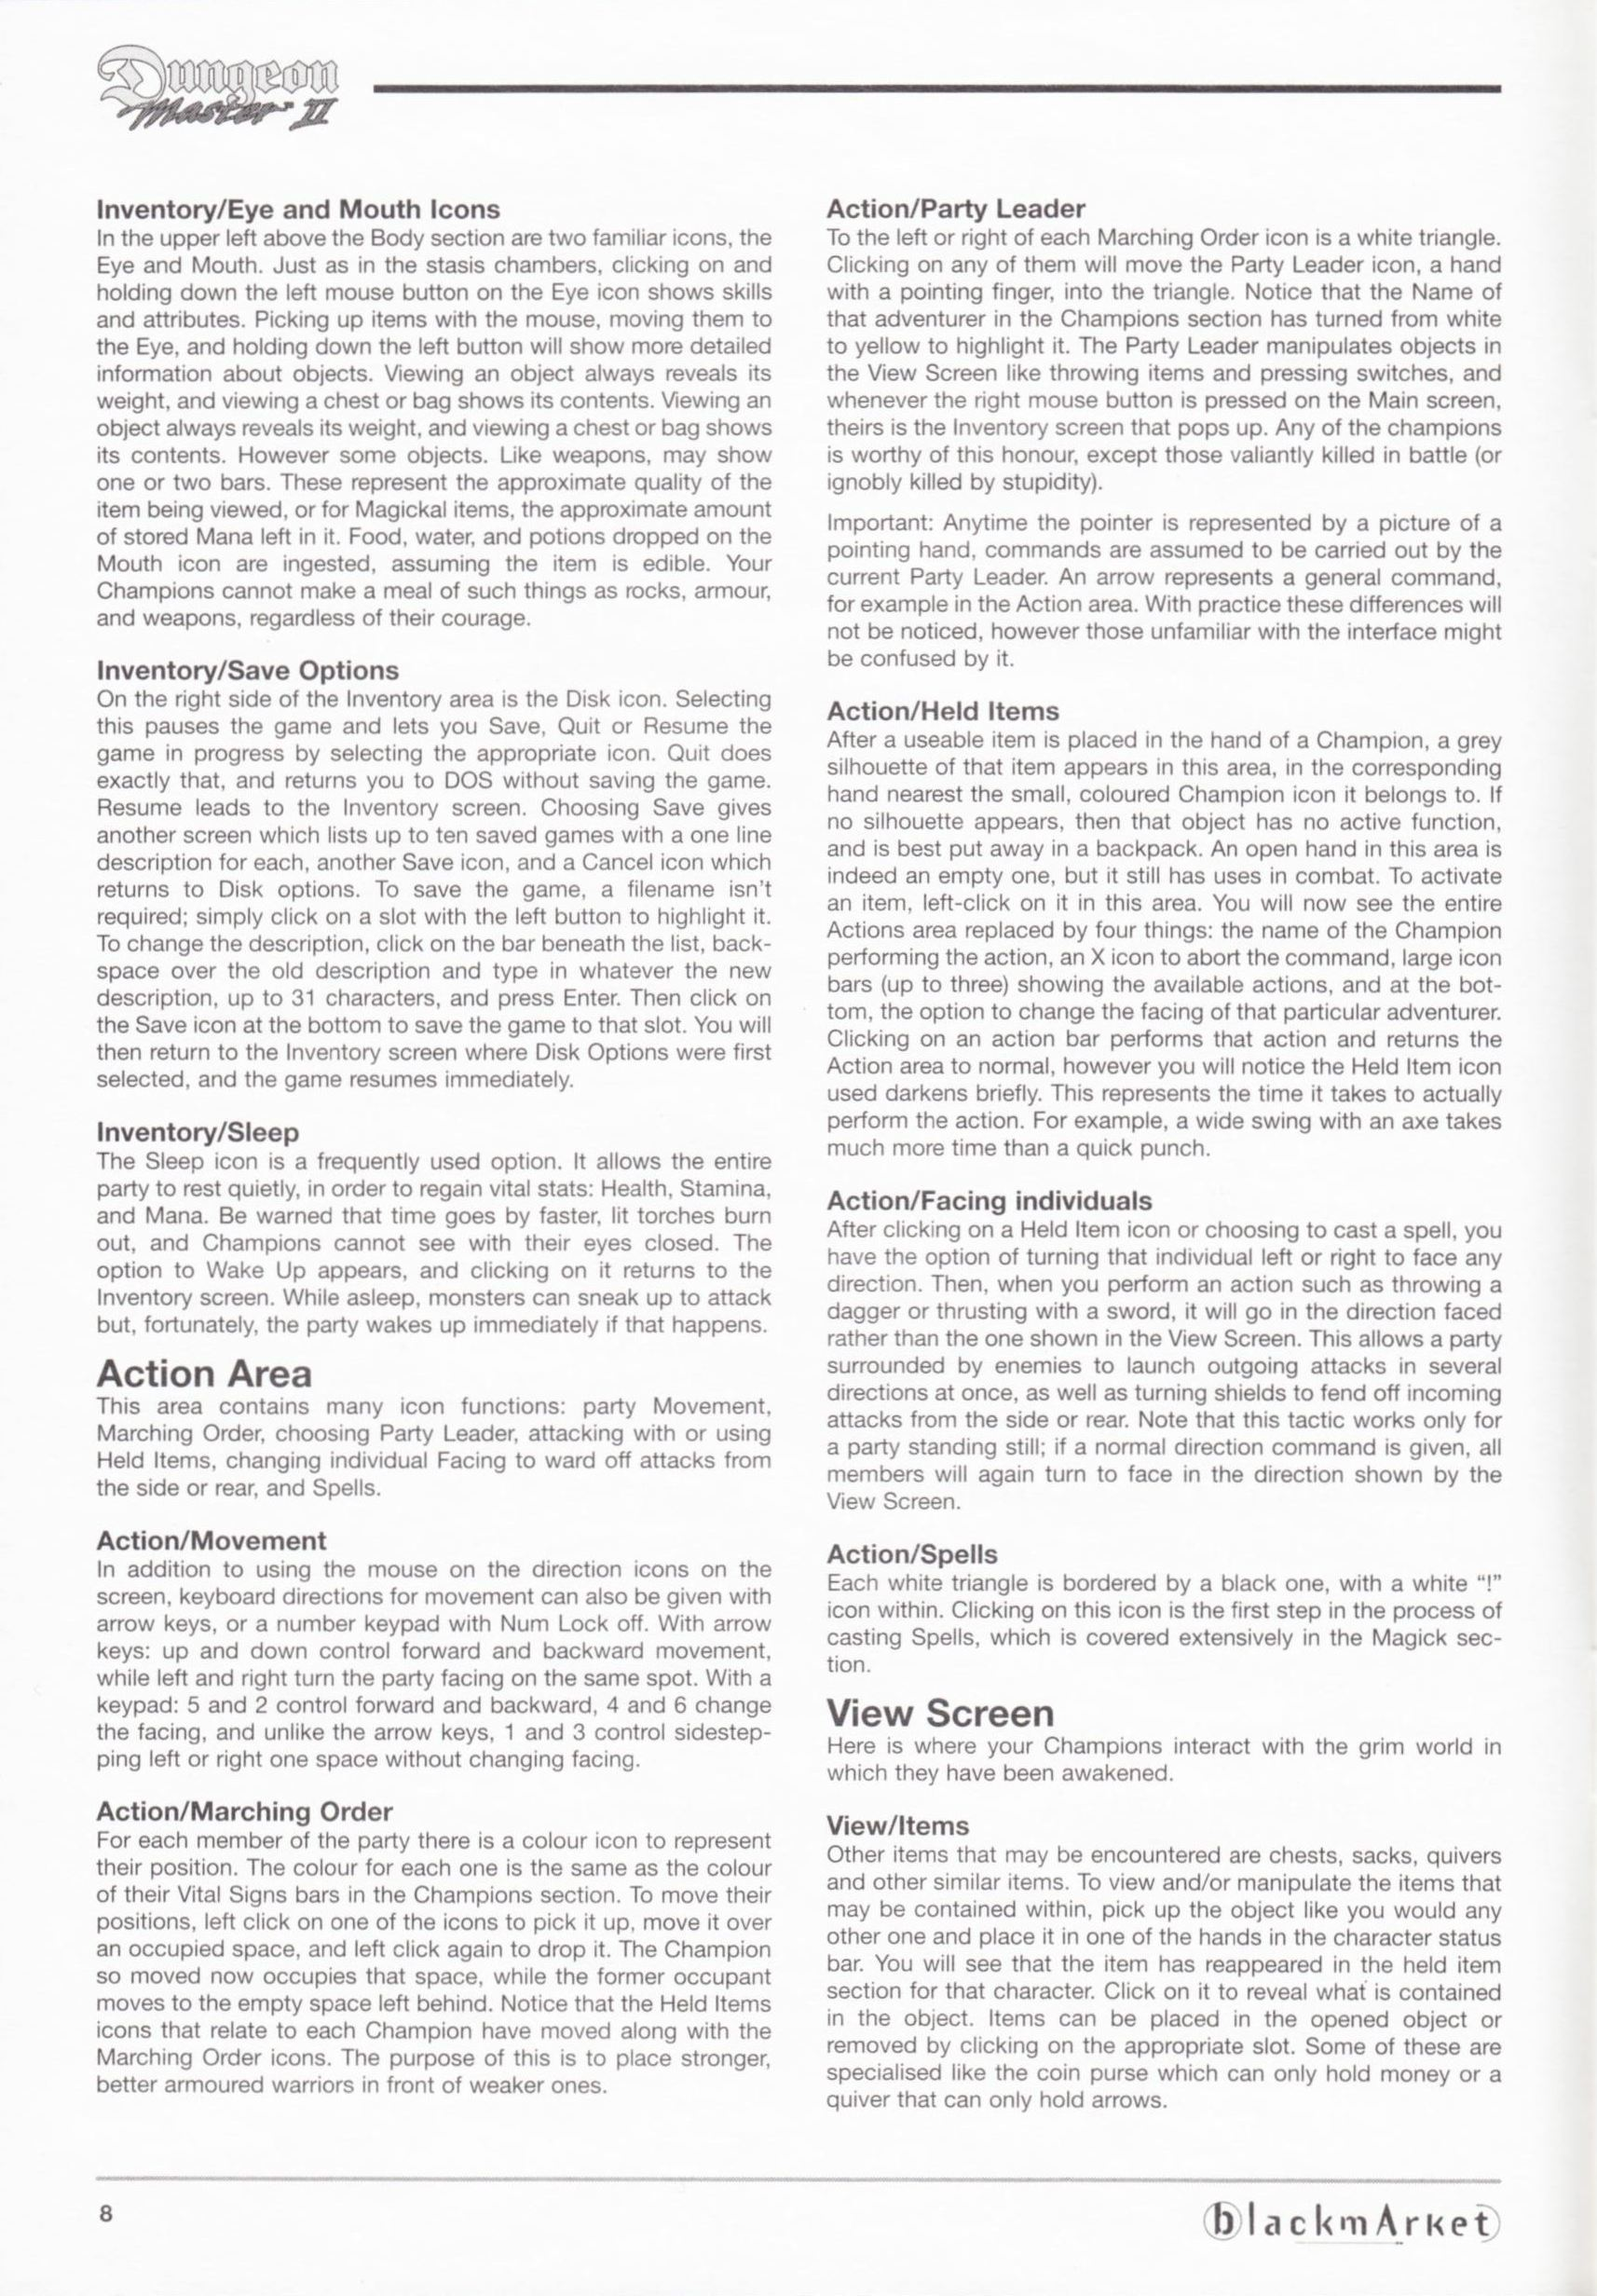 Game - Dungeon Master II - DE - PC - Blackmarket With Manual - Manual - Page 010 - Scan